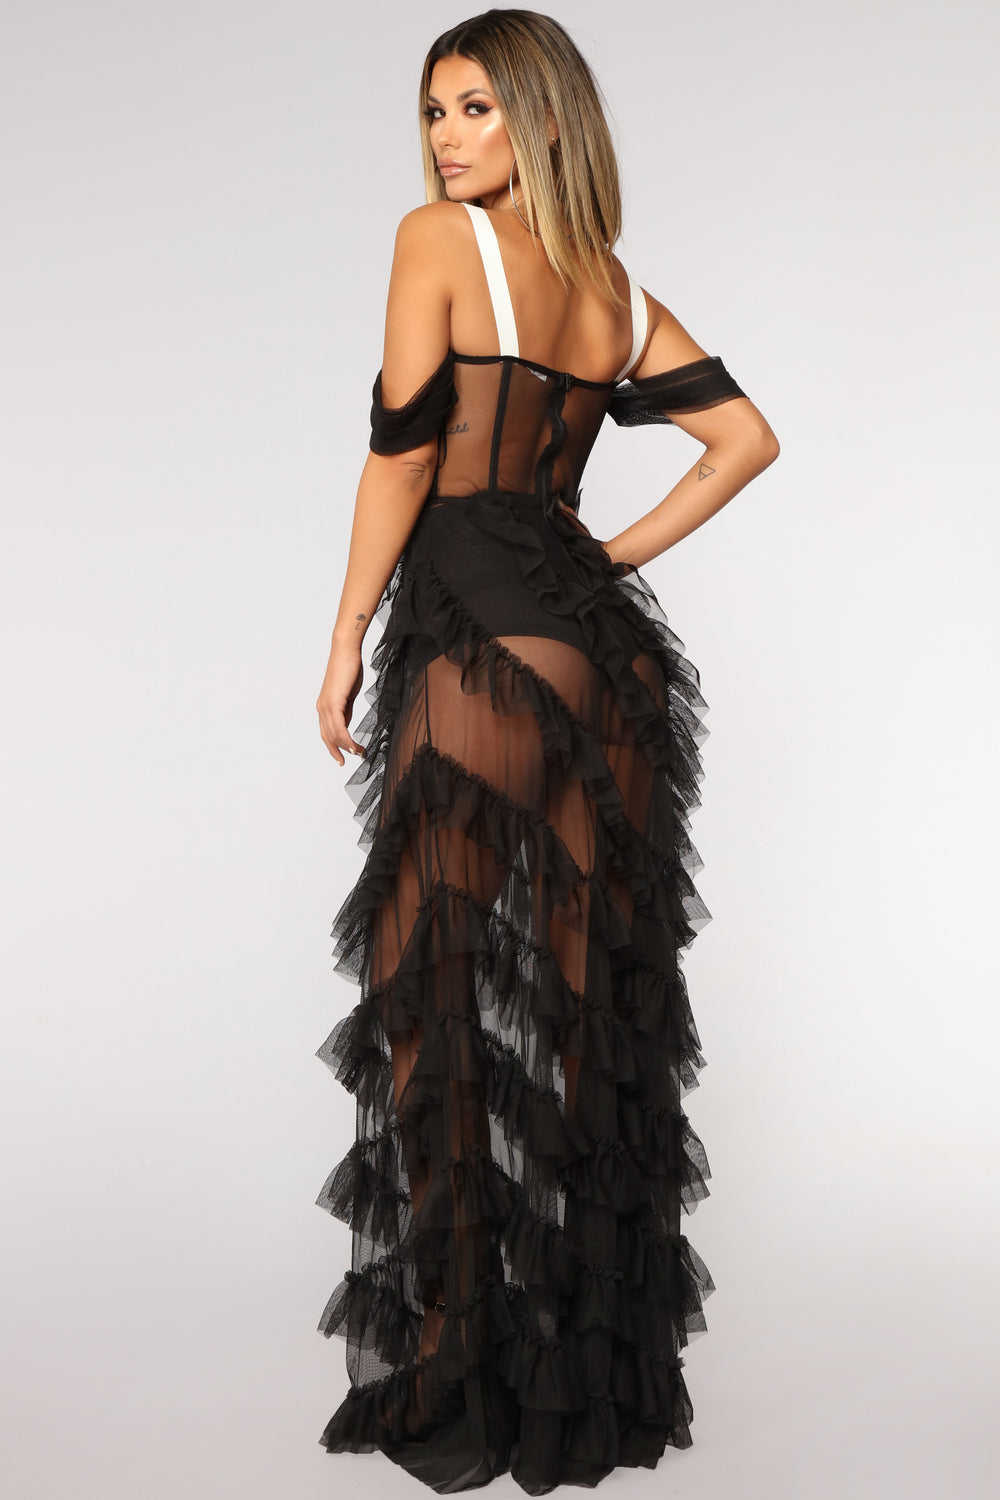 Demand An Encore Mesh Dress - Black